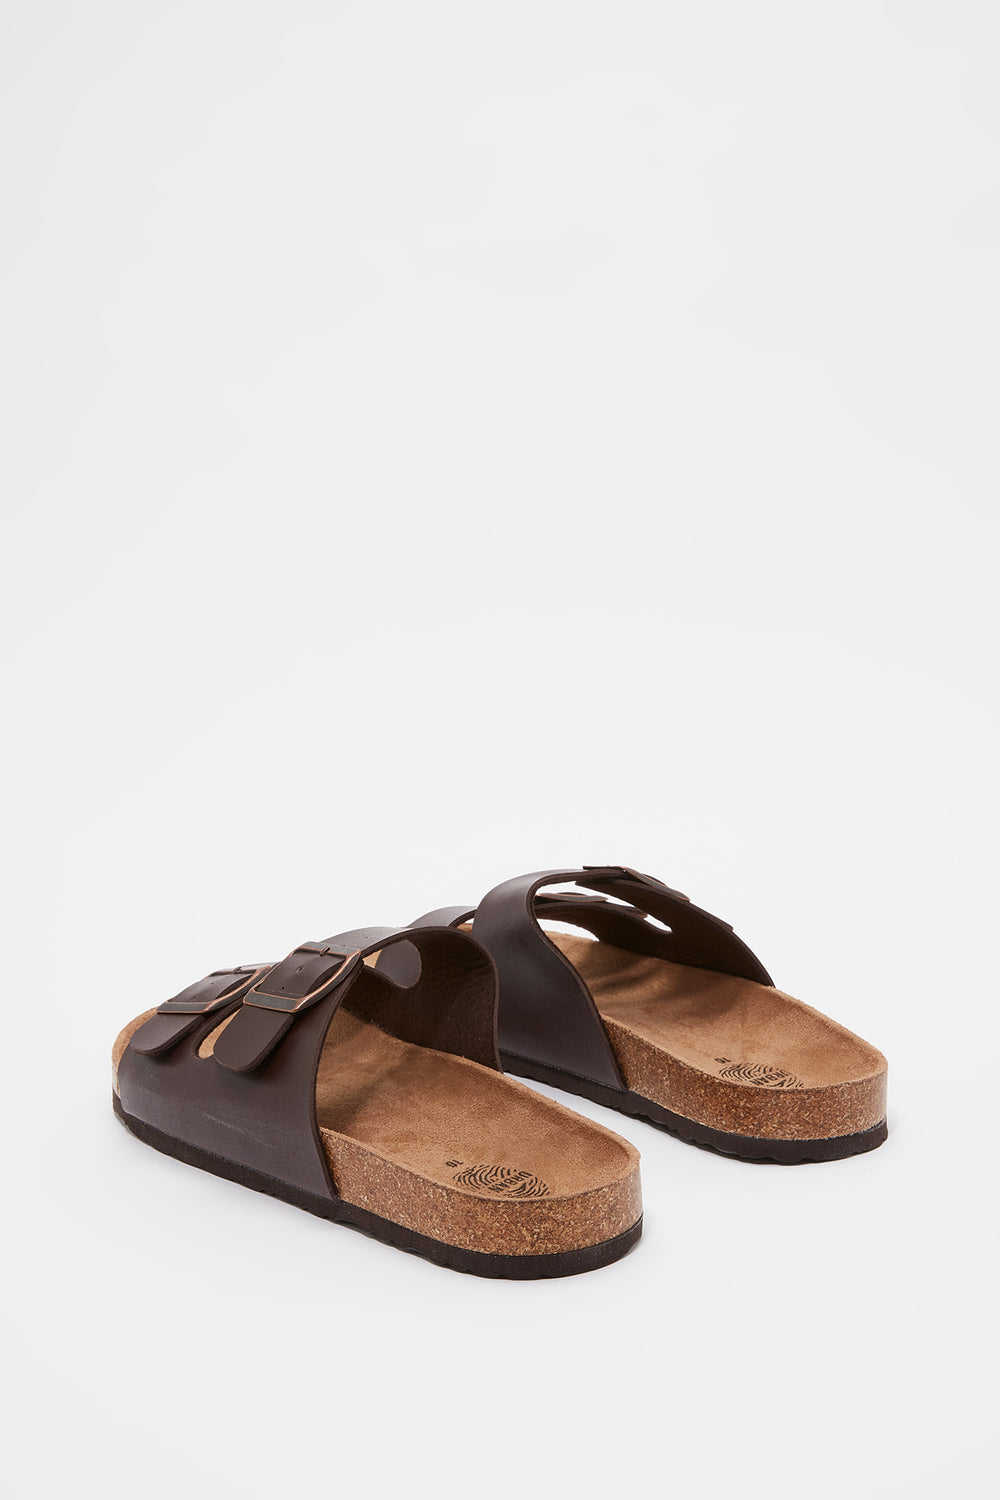 Faux Leather Double Buckle Slide Brown